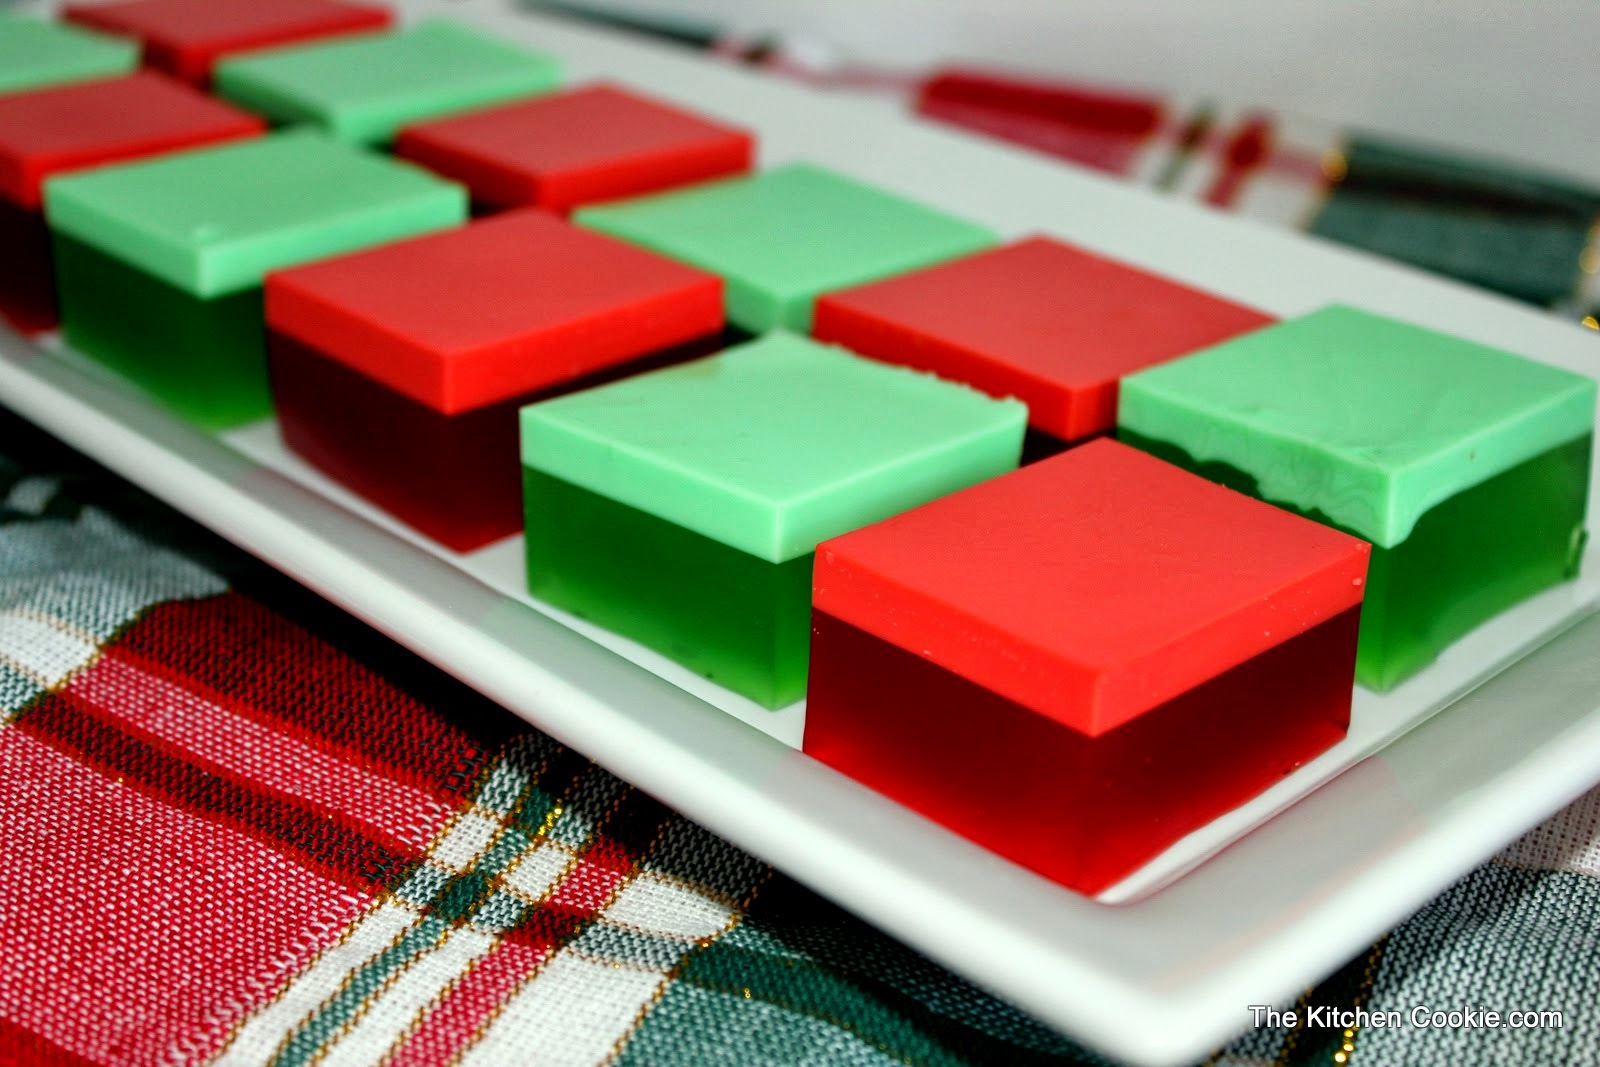 ... finger jello at picnic jpg christmas finger jello photo christmas red